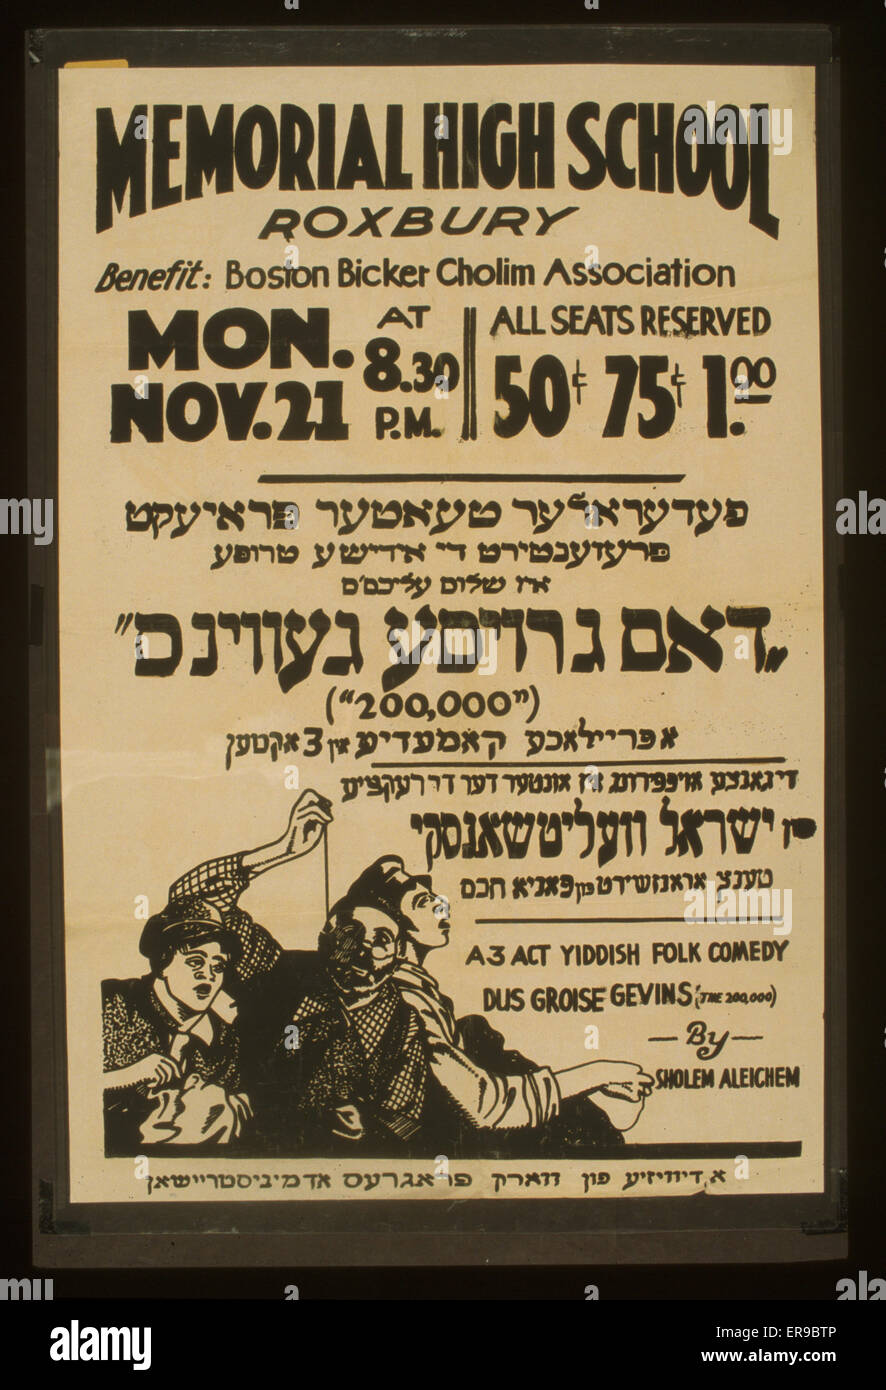 A 3 act Yiddish folk comedy Dus groise Gevins (The 200,000) by Sholem Aleichem. Poster for Federal Theatre Project - Stock Image